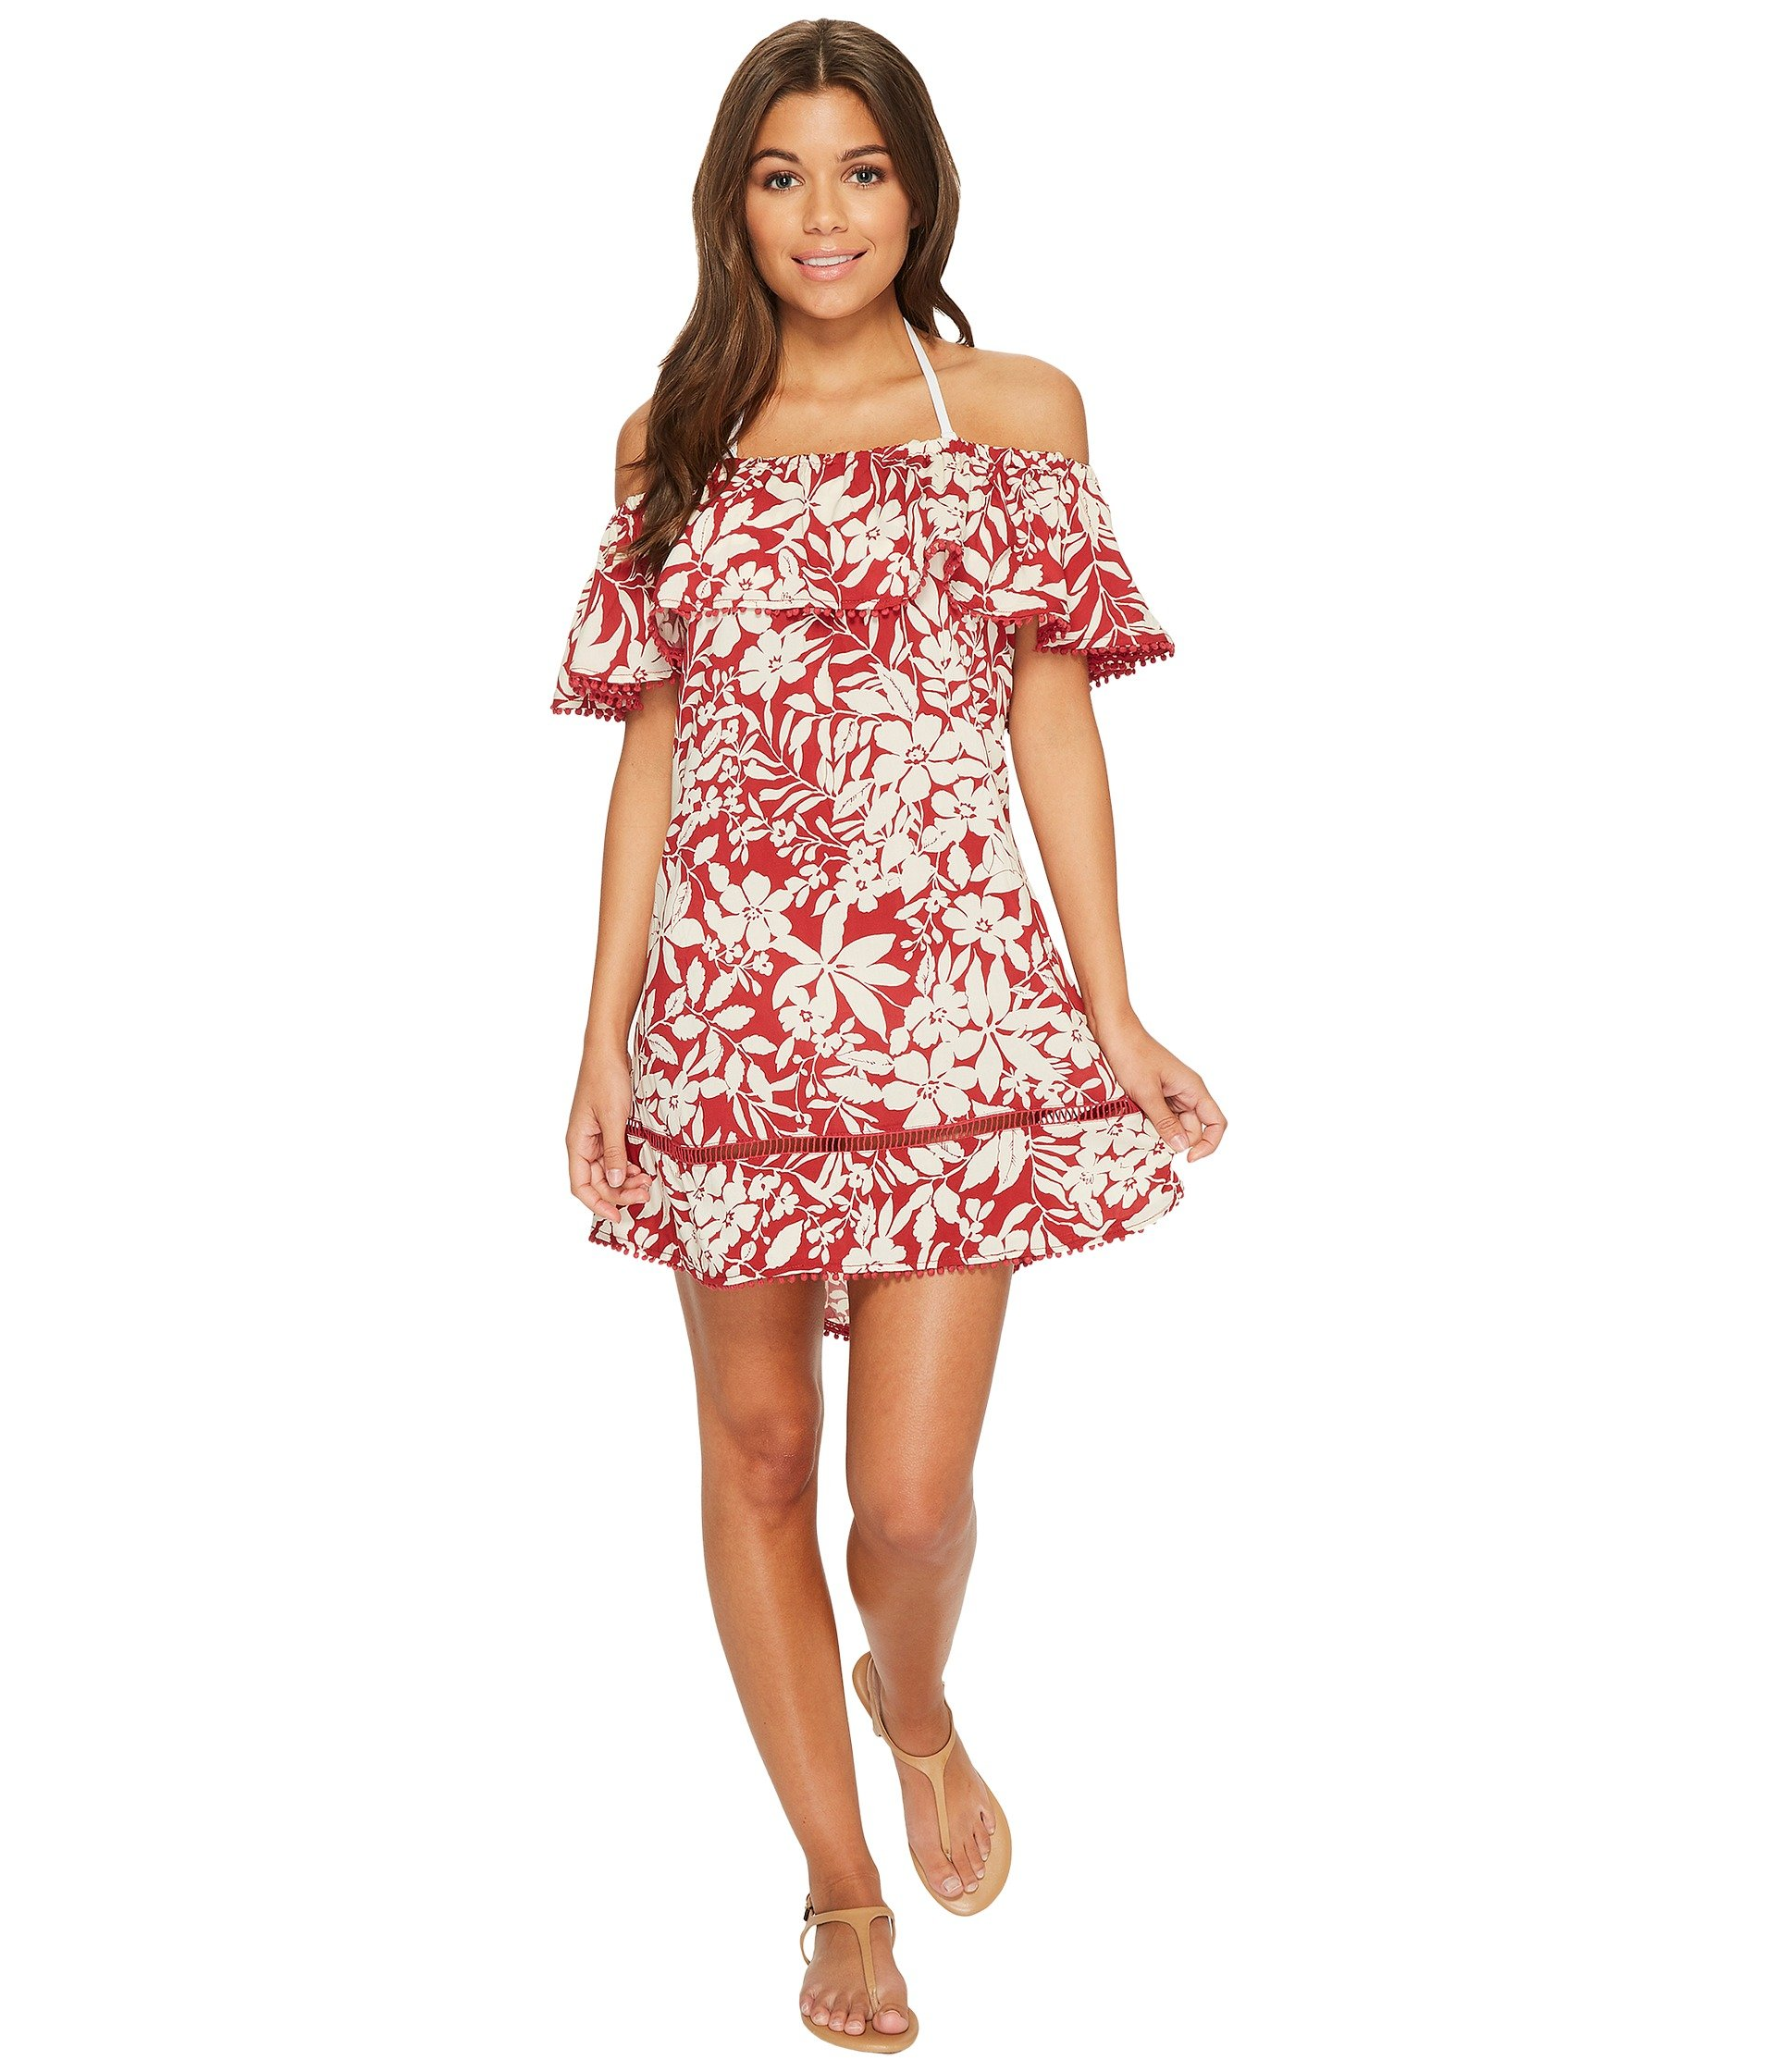 Salida de Baño para Mujer Red Carter Shanghai Off the Shoulder Dress Cover-Up  + Red Carter en VeoyCompro.net